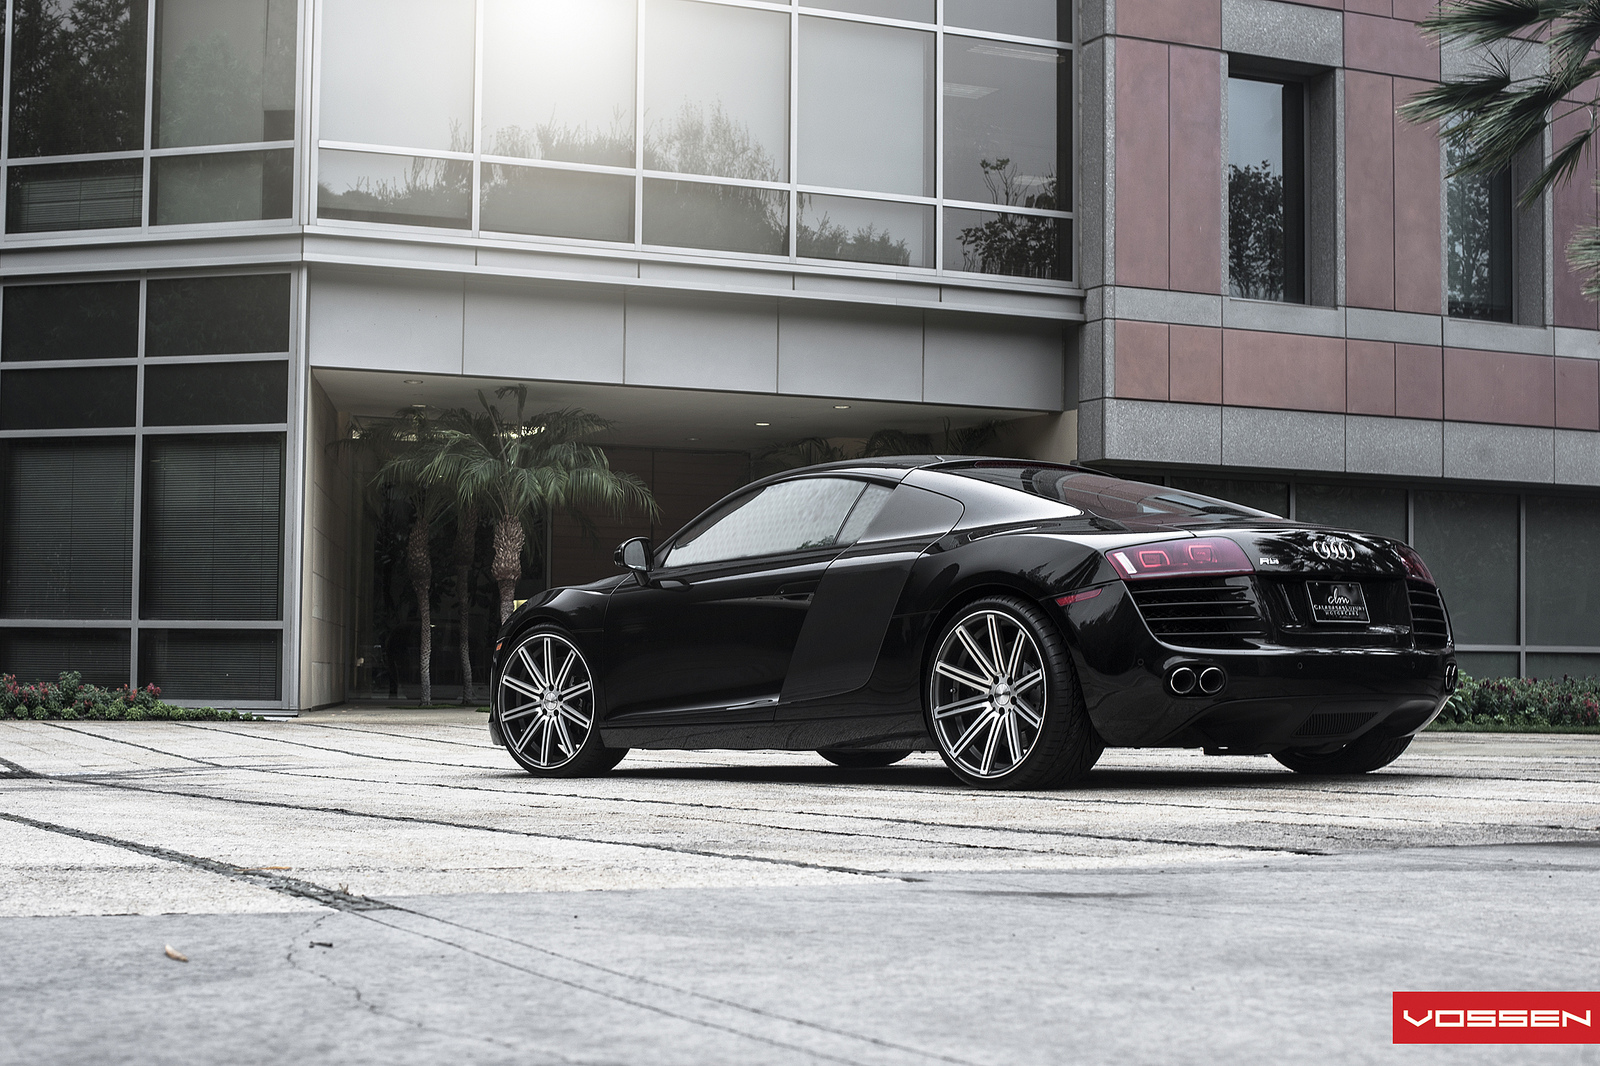 Top tips for a perfectly customized audi r8 for an 872 hp audi r8 52 fsi you may try to set publicscrutiny Images